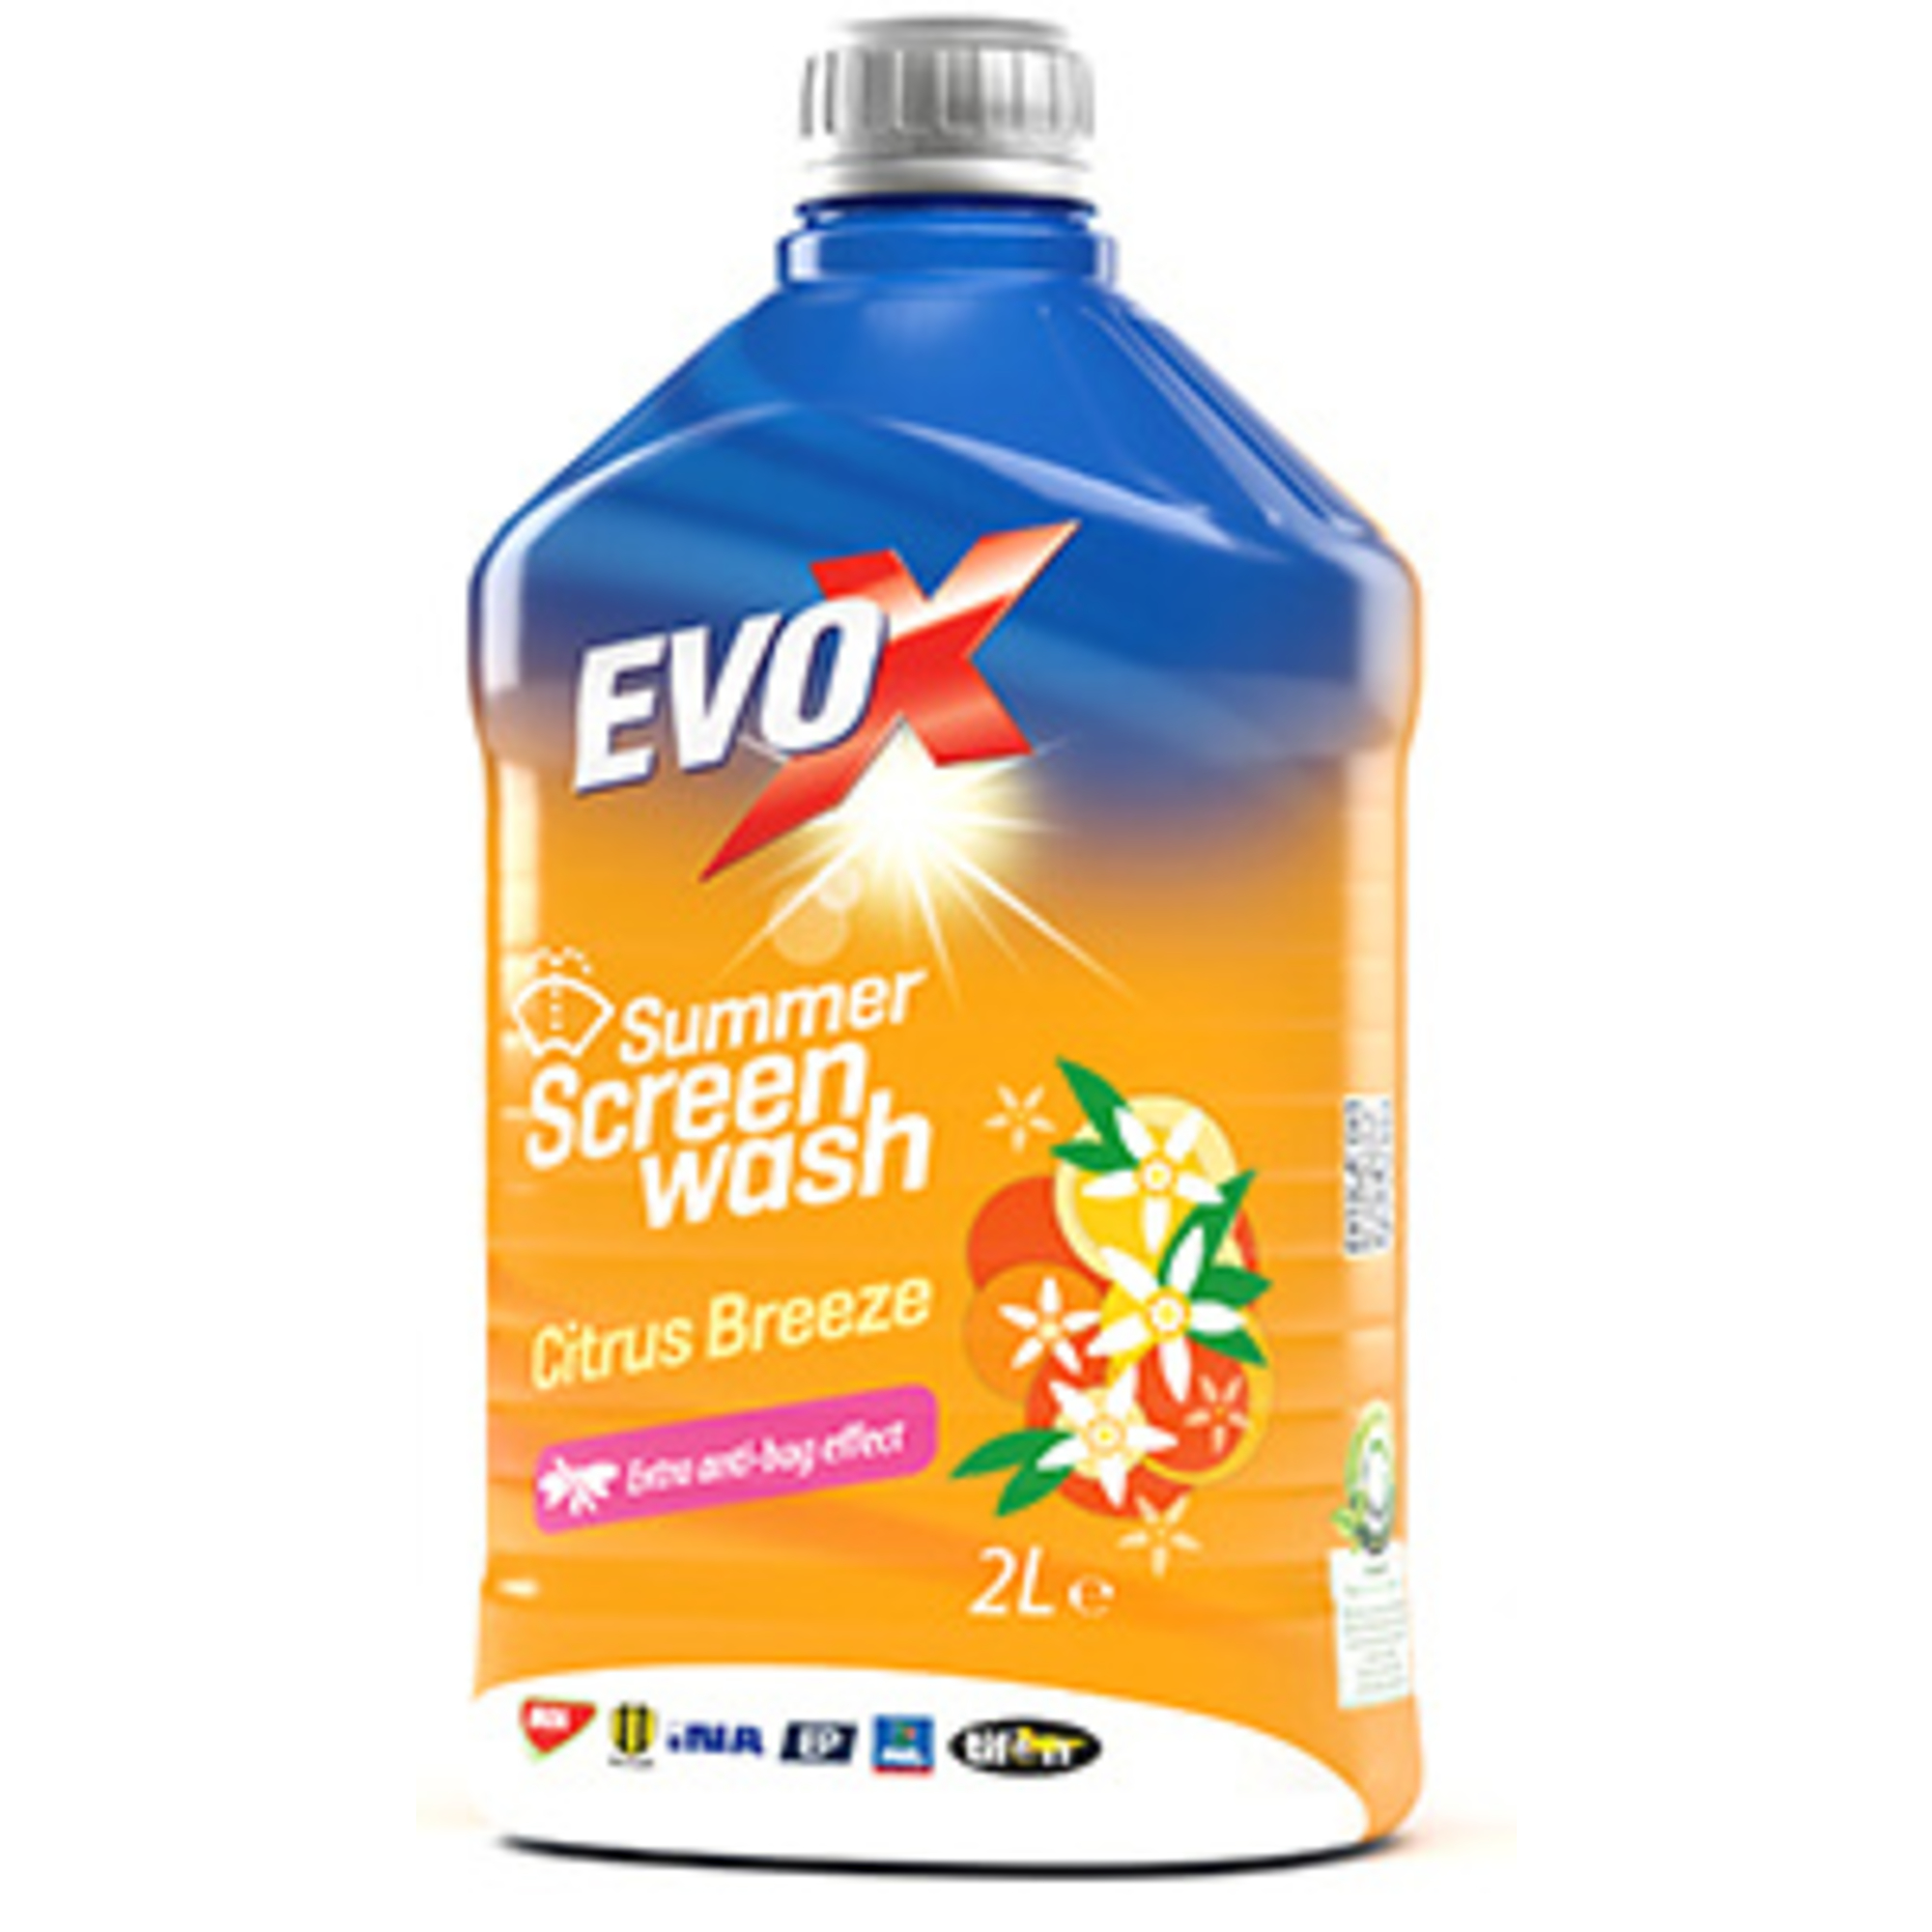 Evox Summer Citrus Breeze 4L 19003518